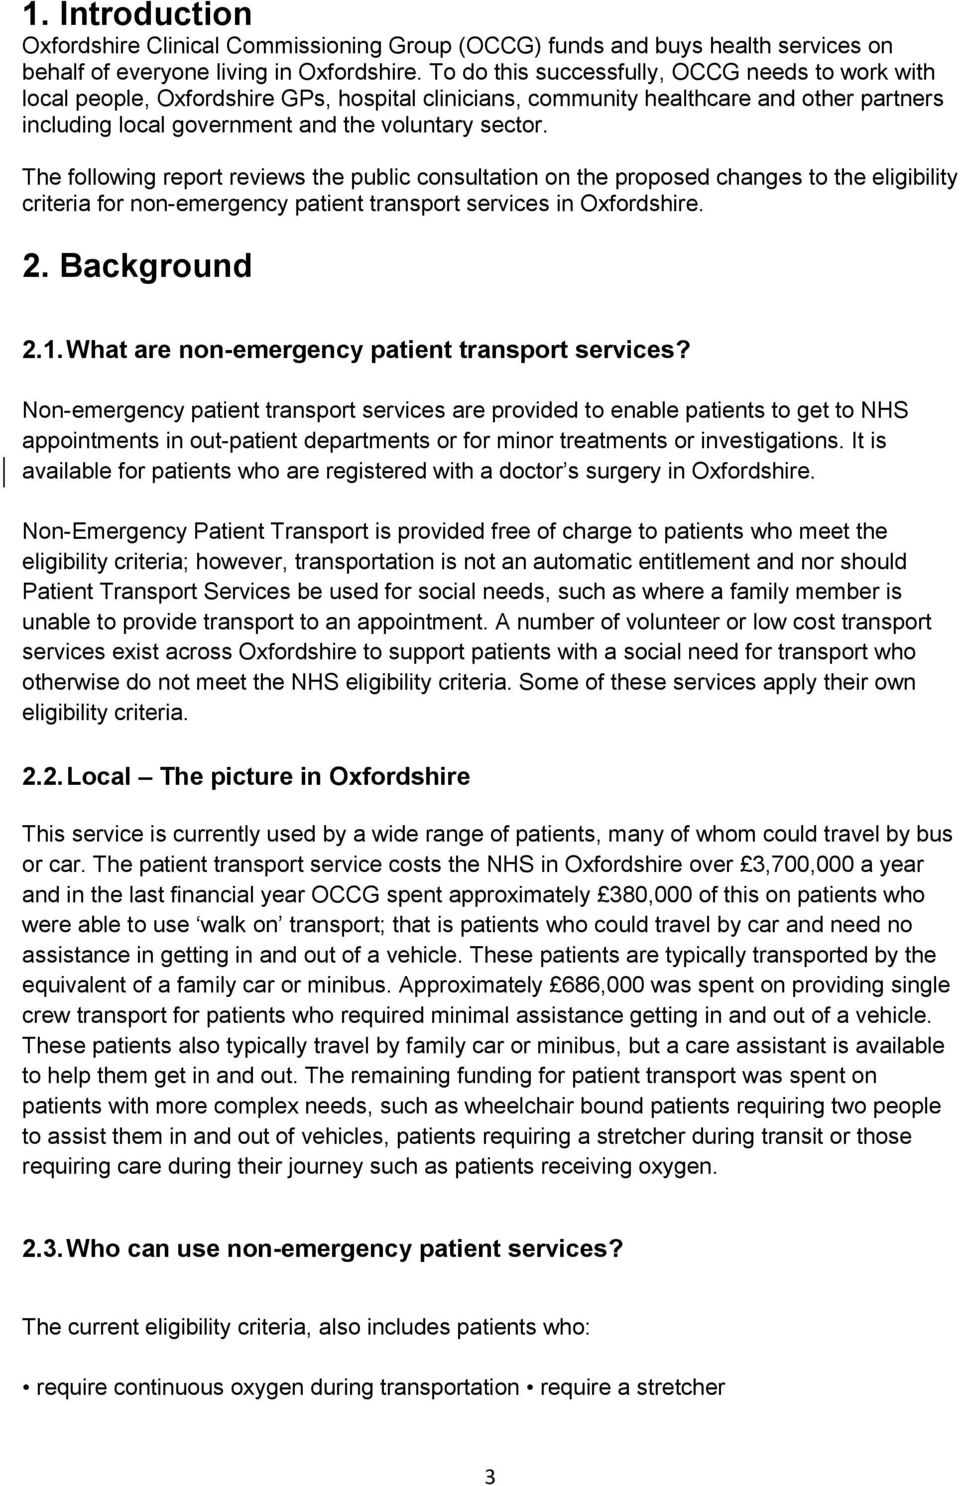 The following report reviews the public consultation on the proposed changes to the eligibility criteria for non-emergency patient transport services in Oxfordshire. 2. Background 2.1.